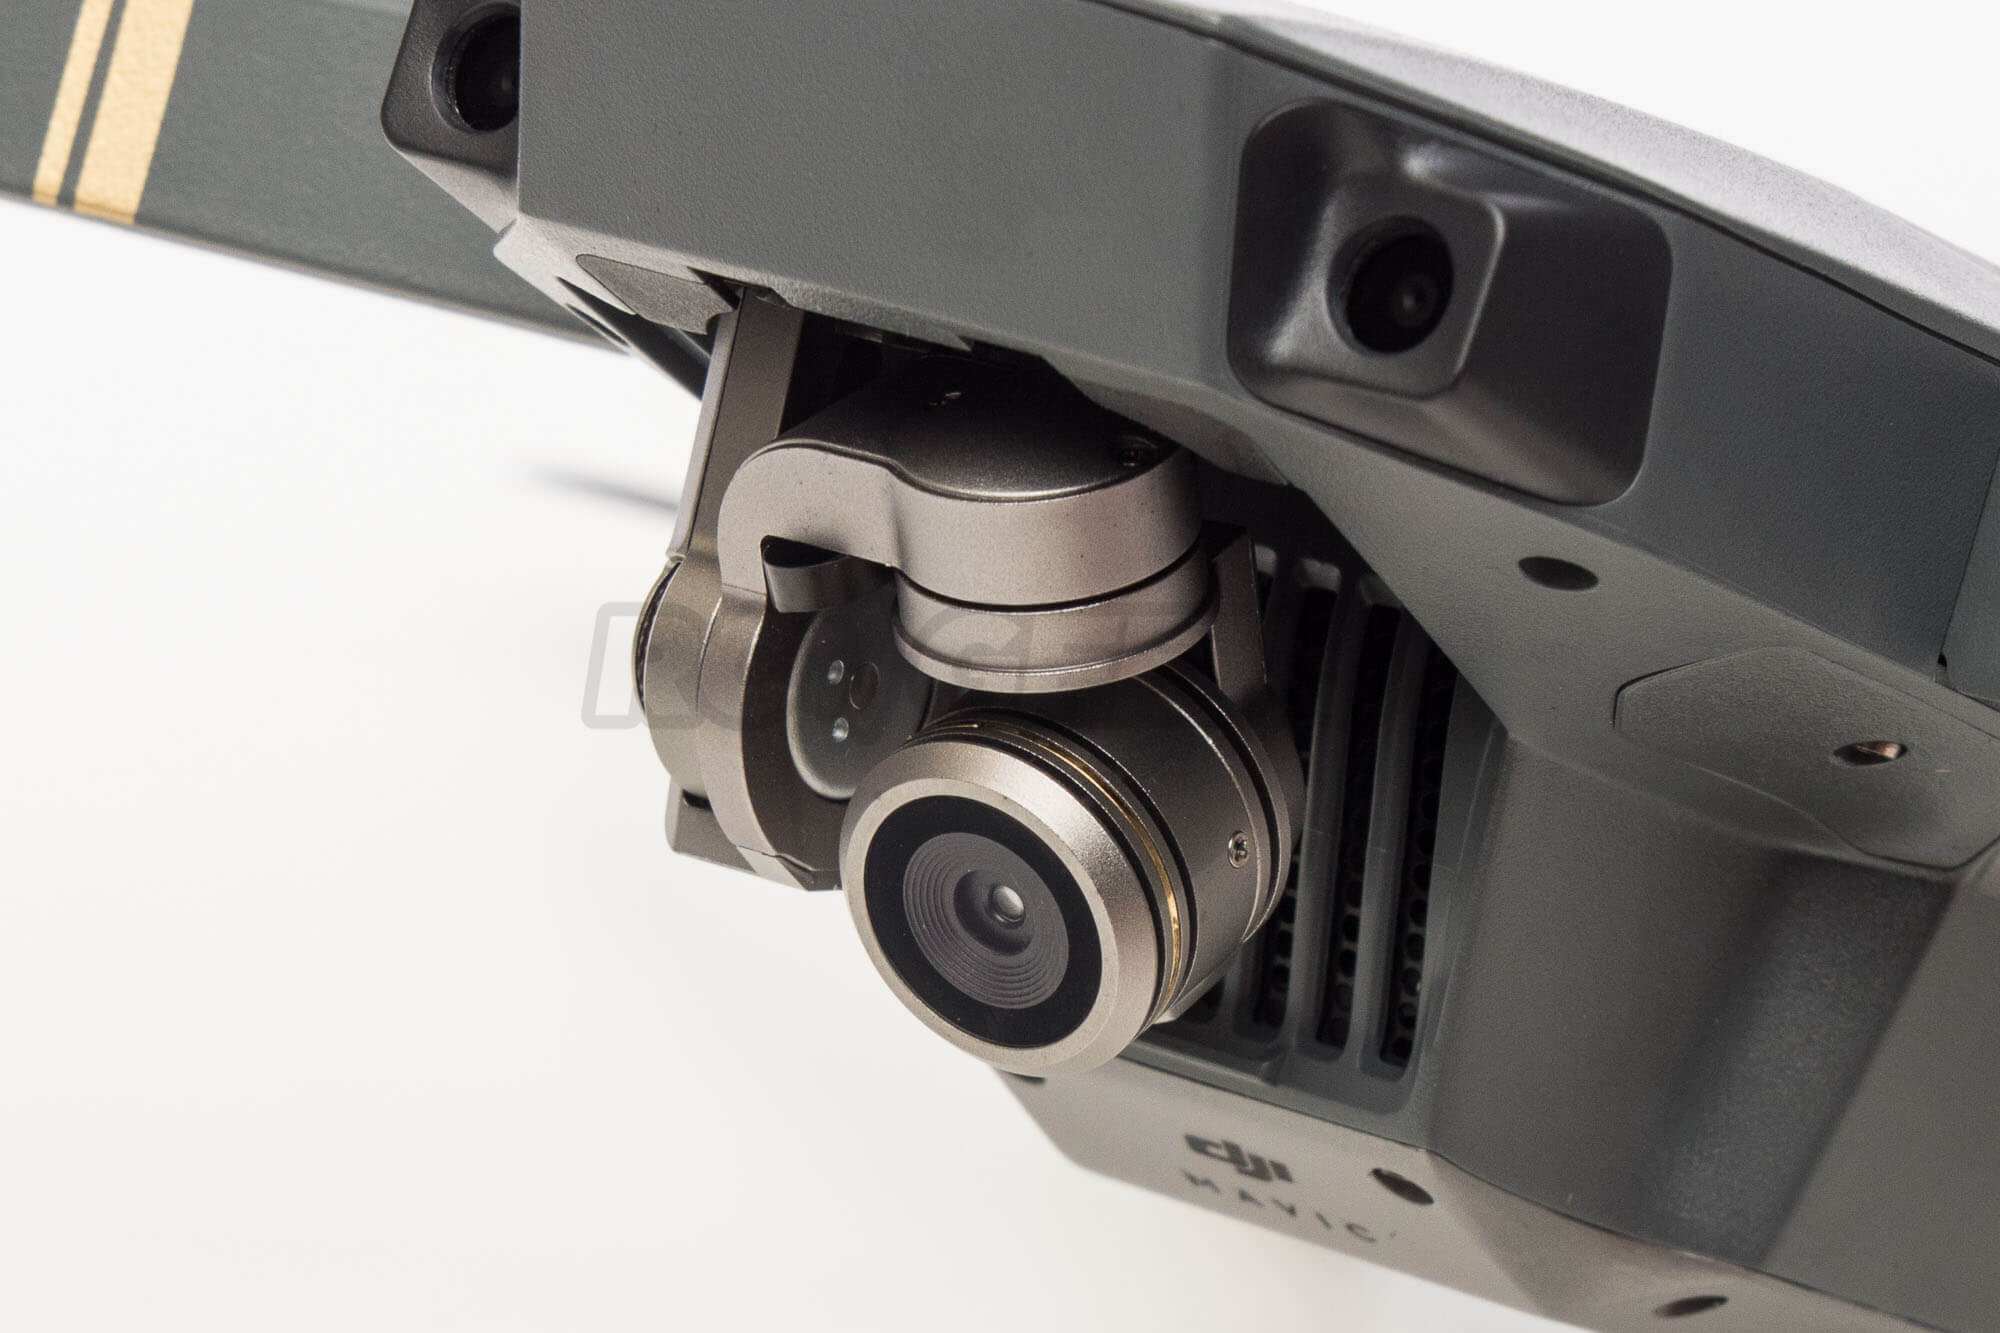 DJI-Mavic-pro-aircraft-camera